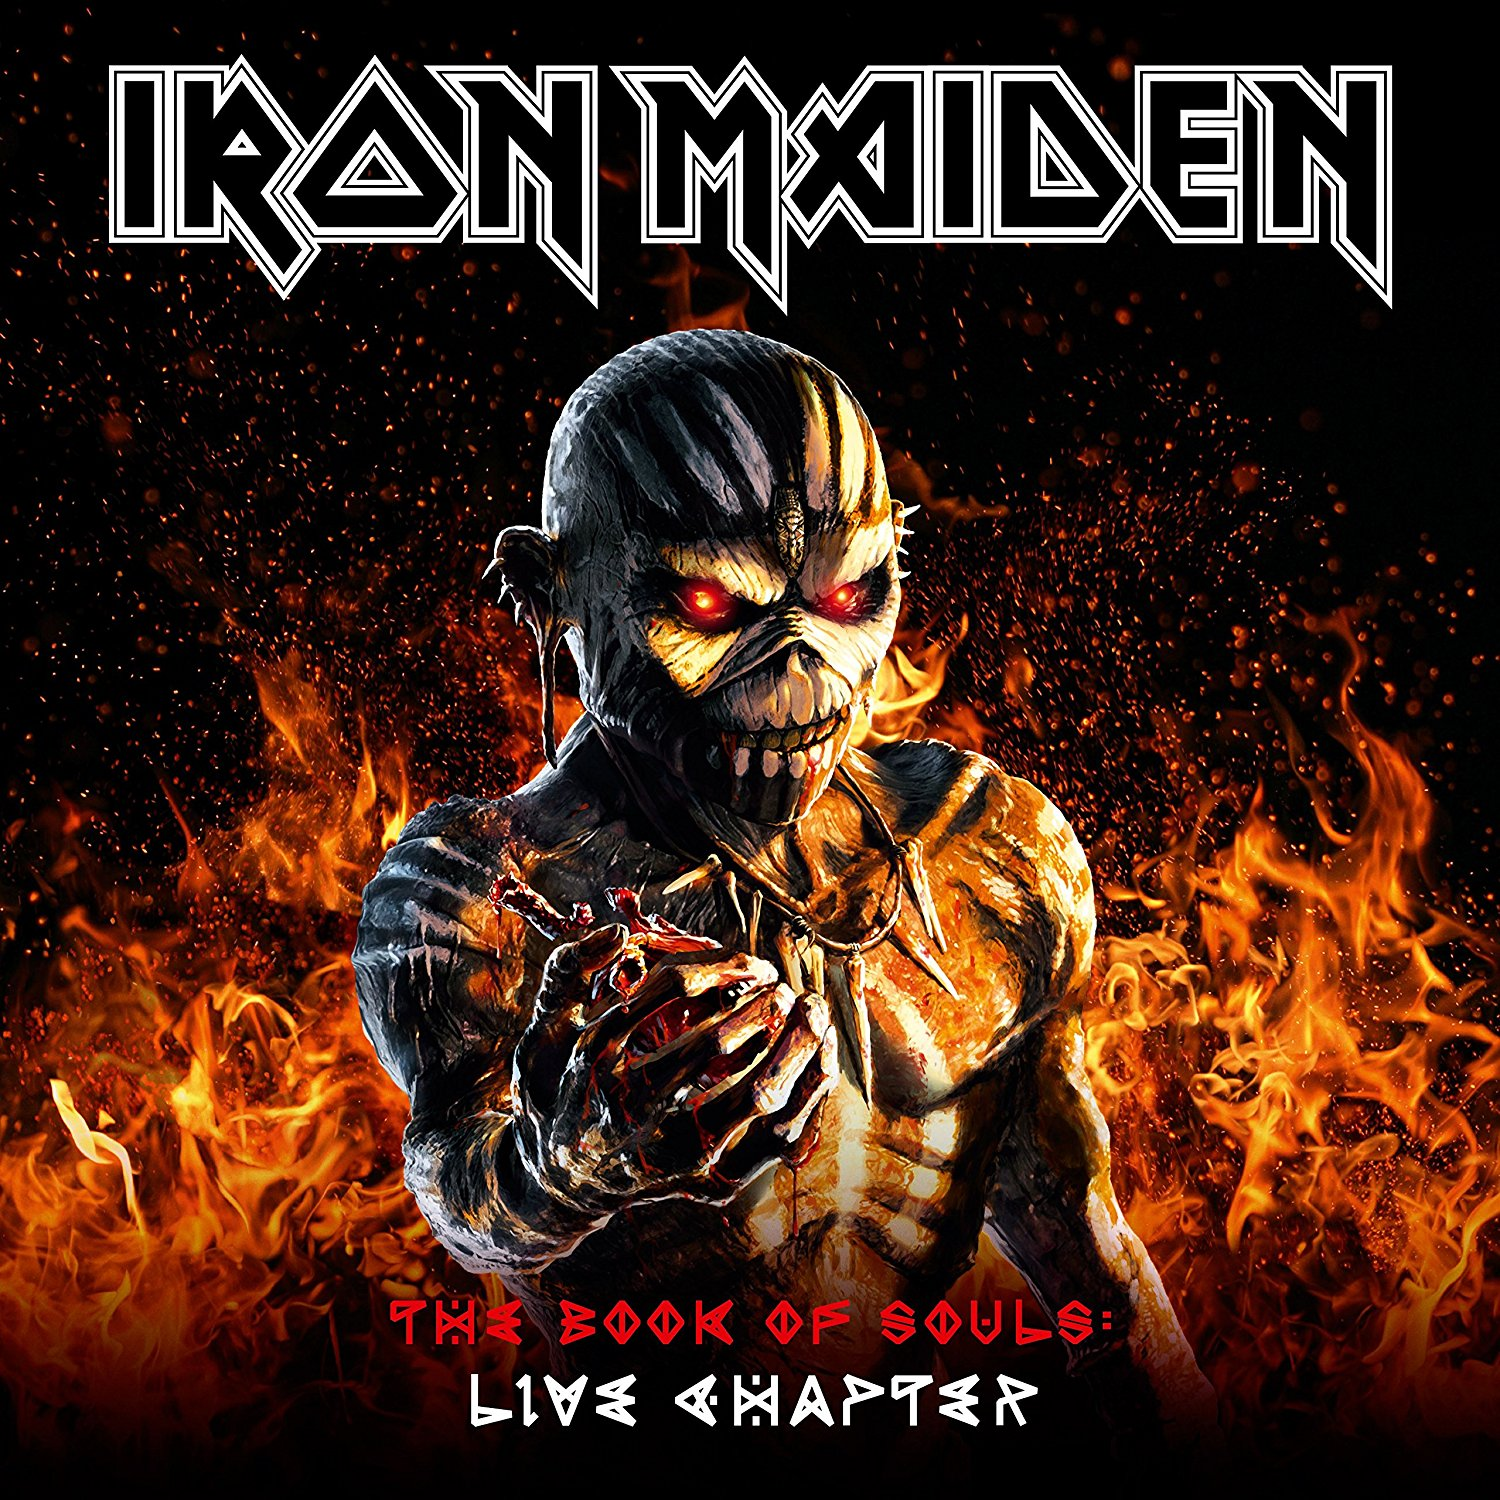 Iron Maiden - The Book Of Souls: The Live Chapter [LP]